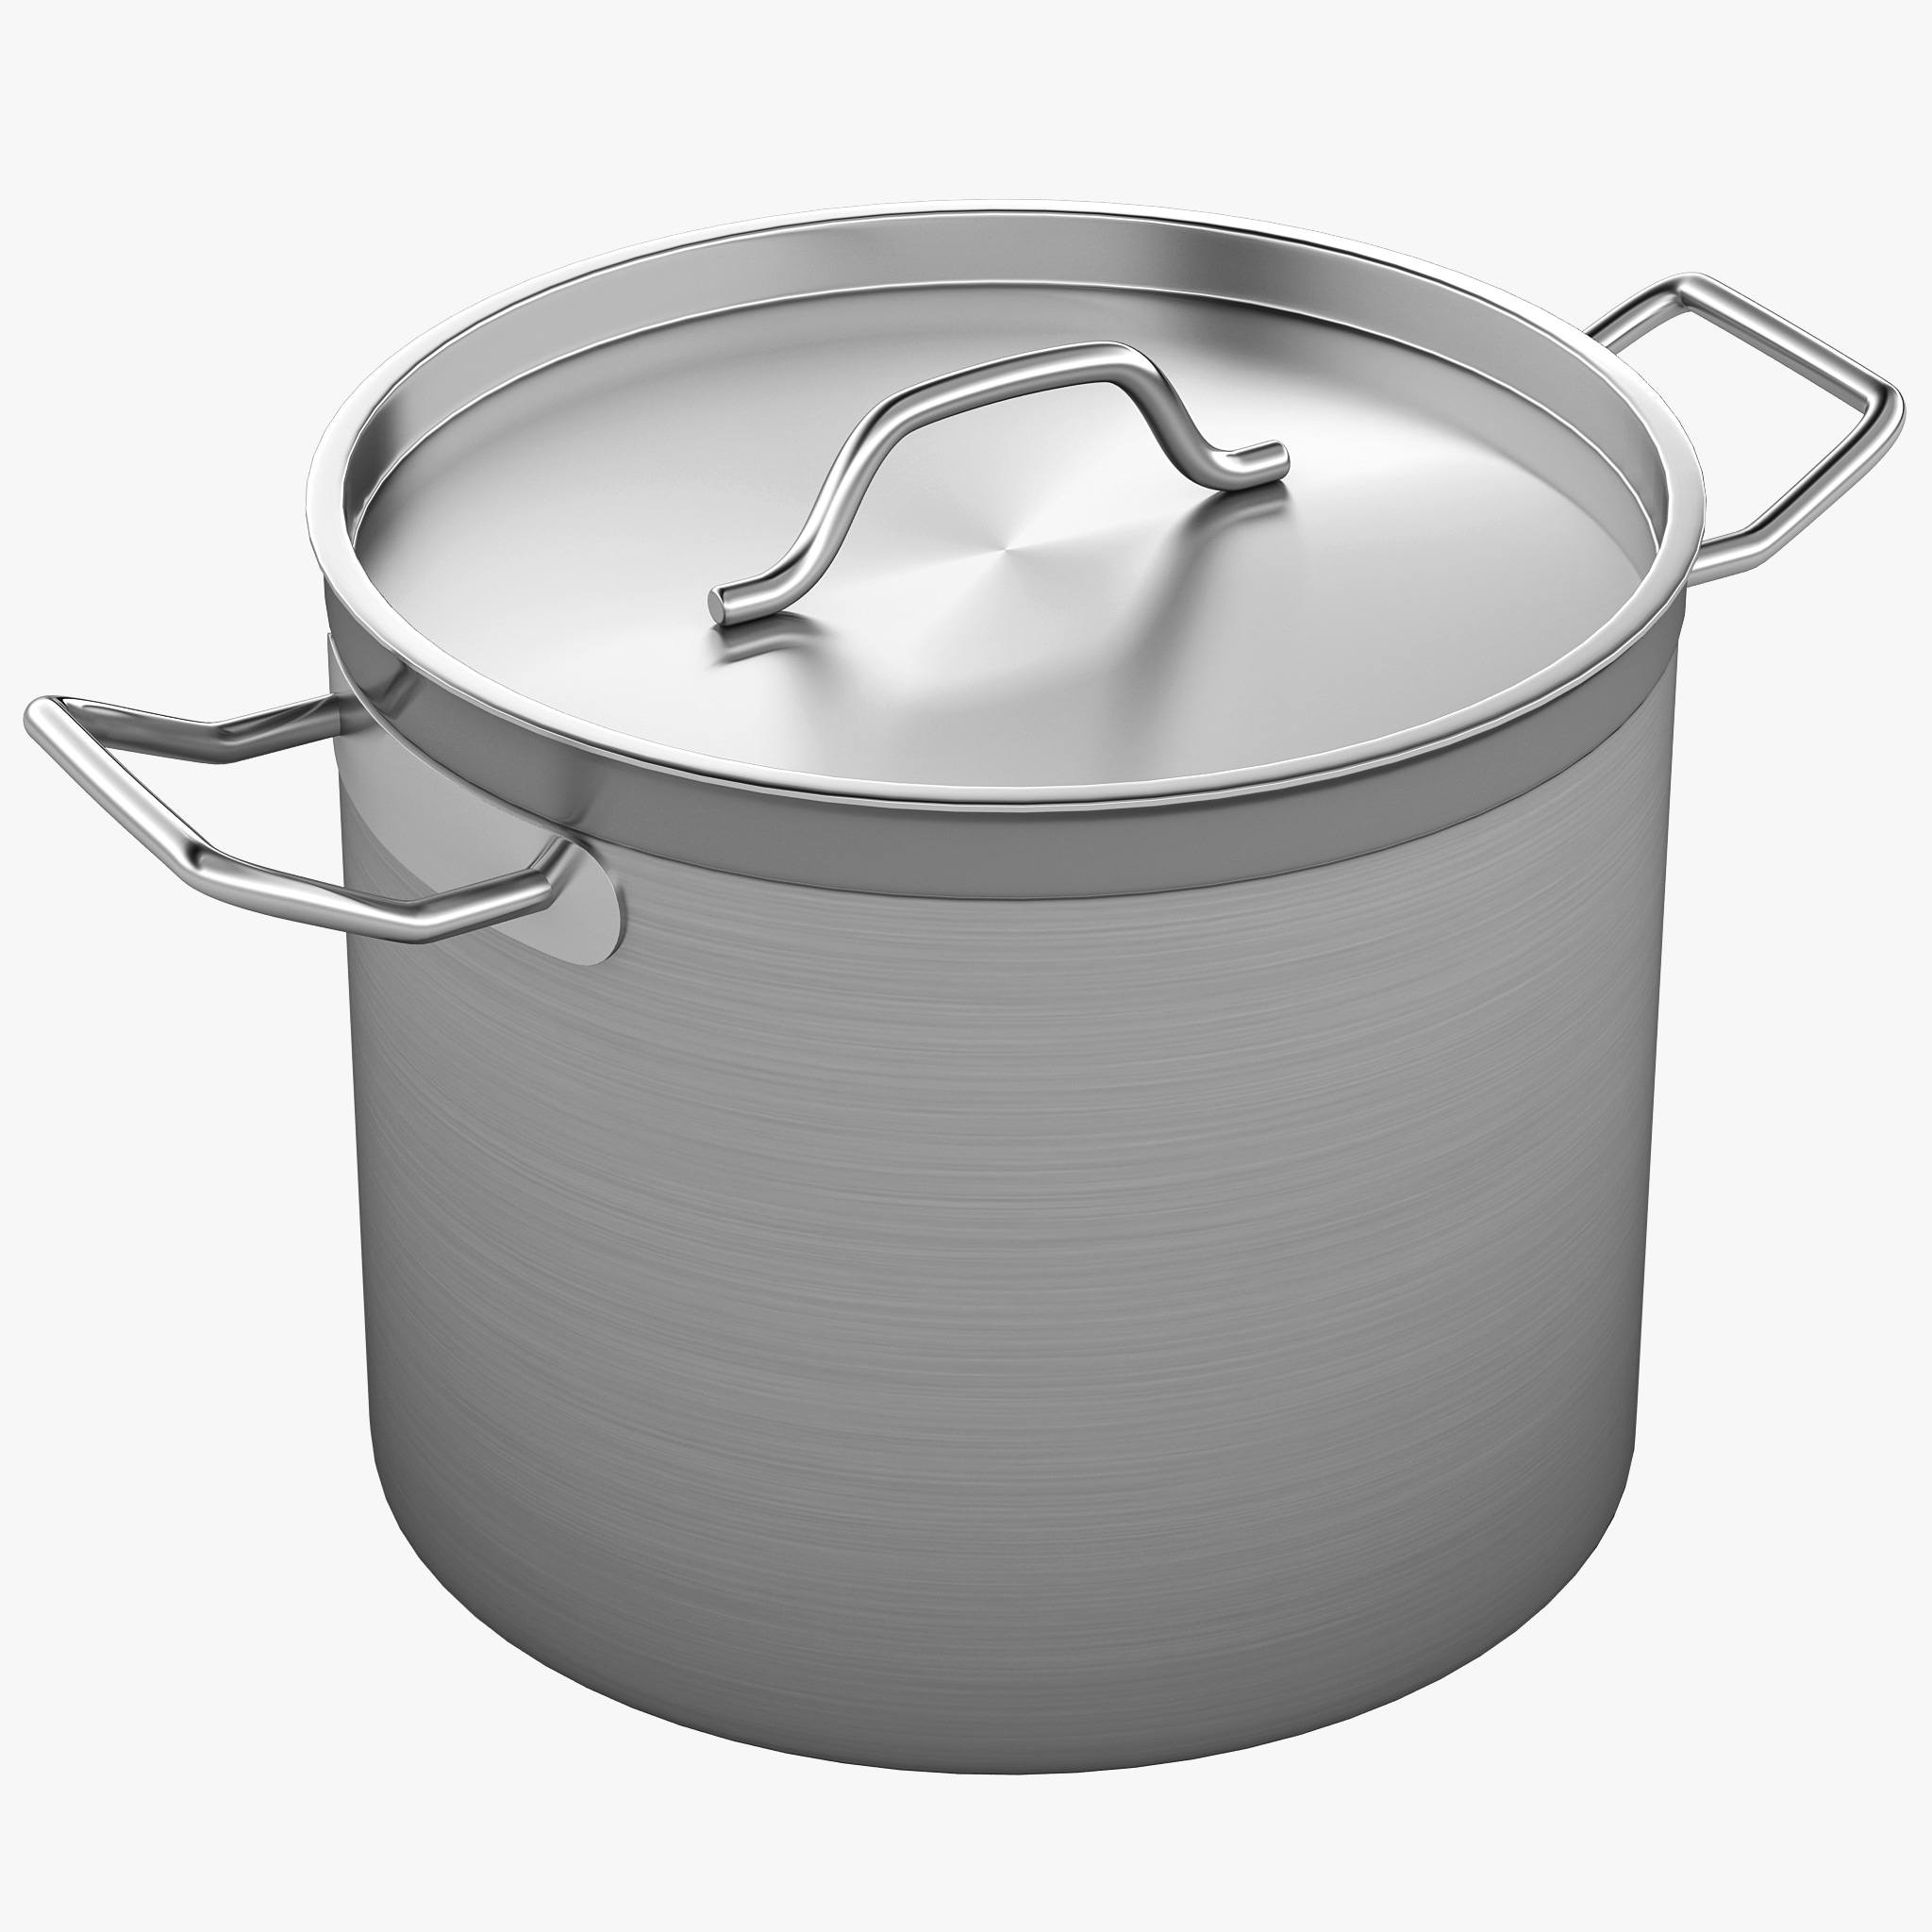 3d professional stainless steel pot model